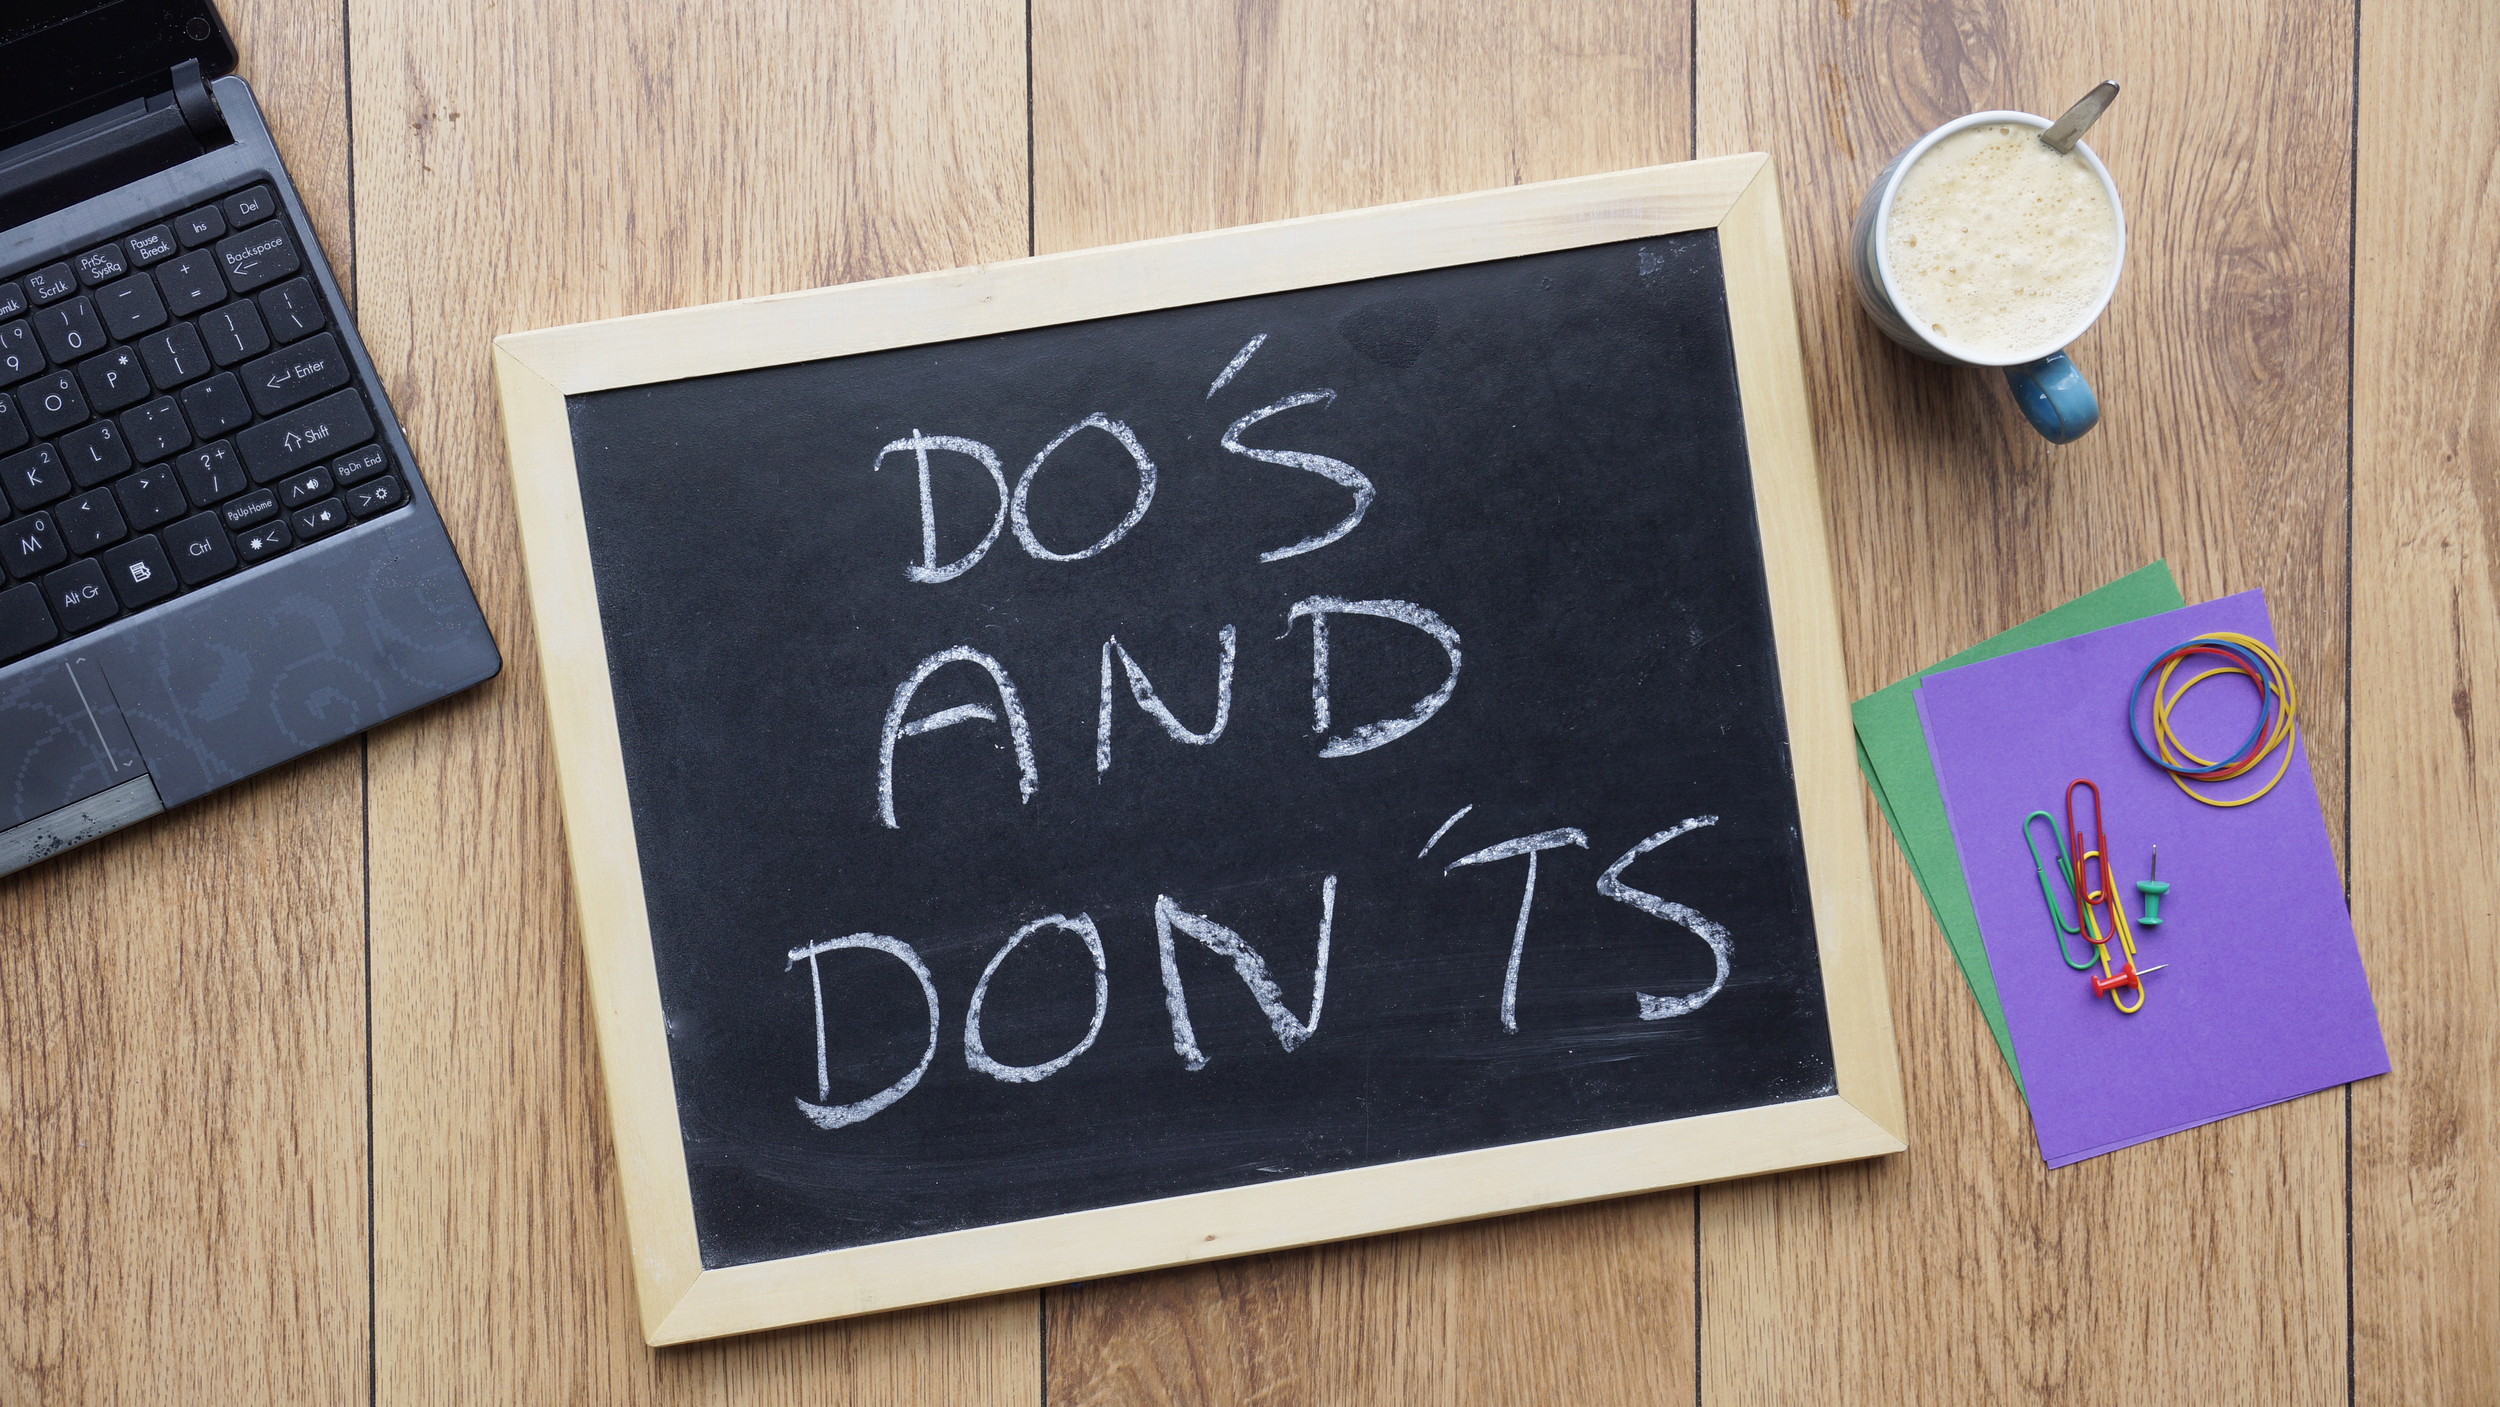 dos and donts chalk board.jpg